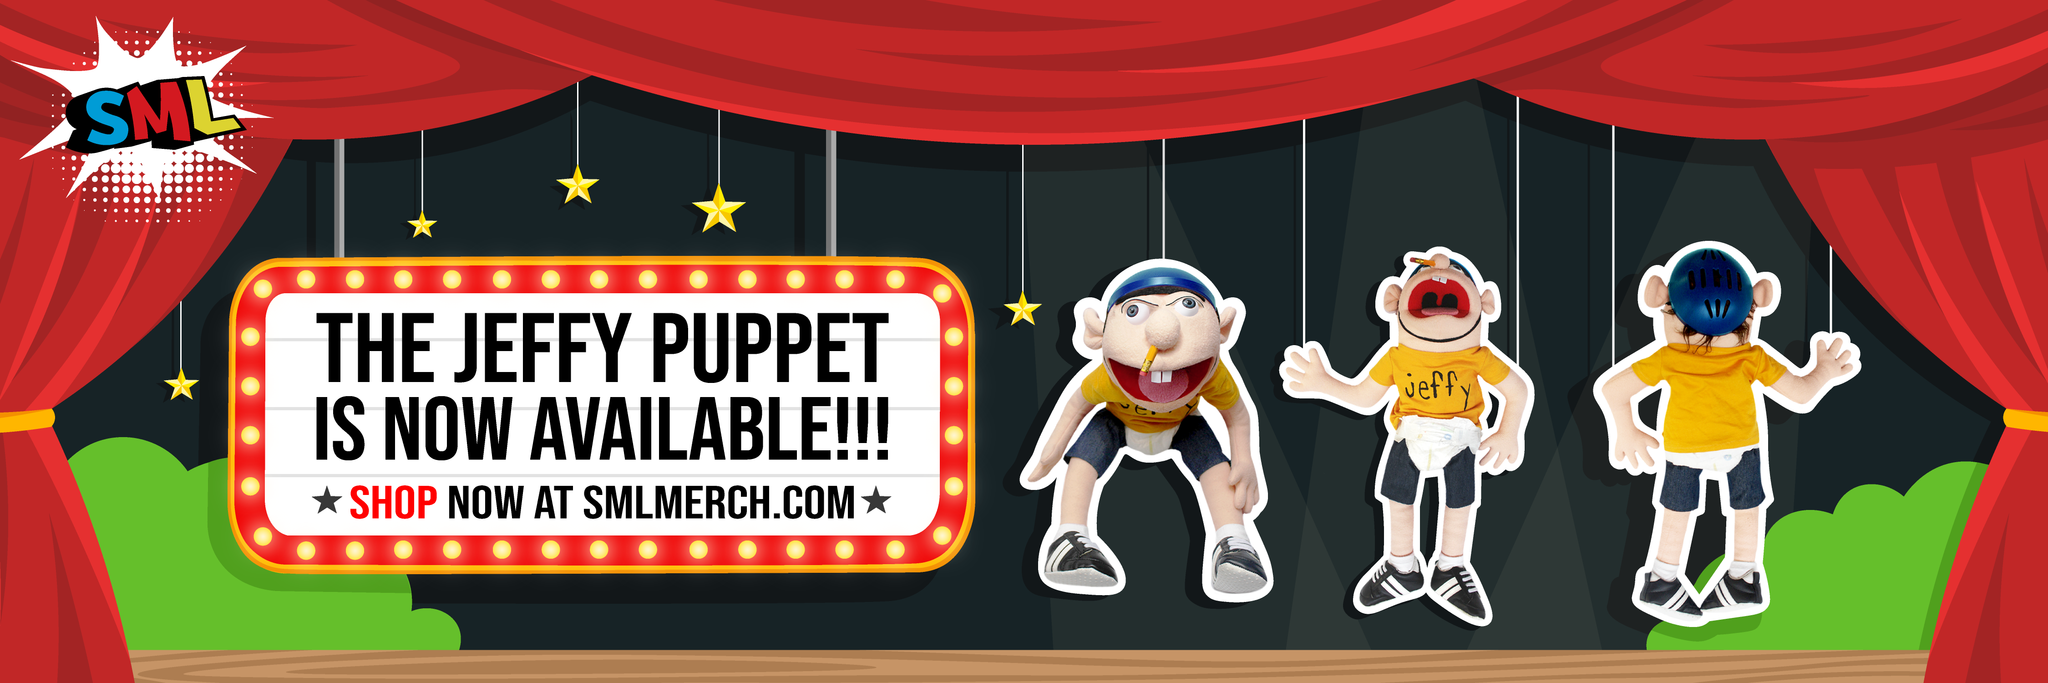 Jeffy Puppet All The Way Down Puppets Fun